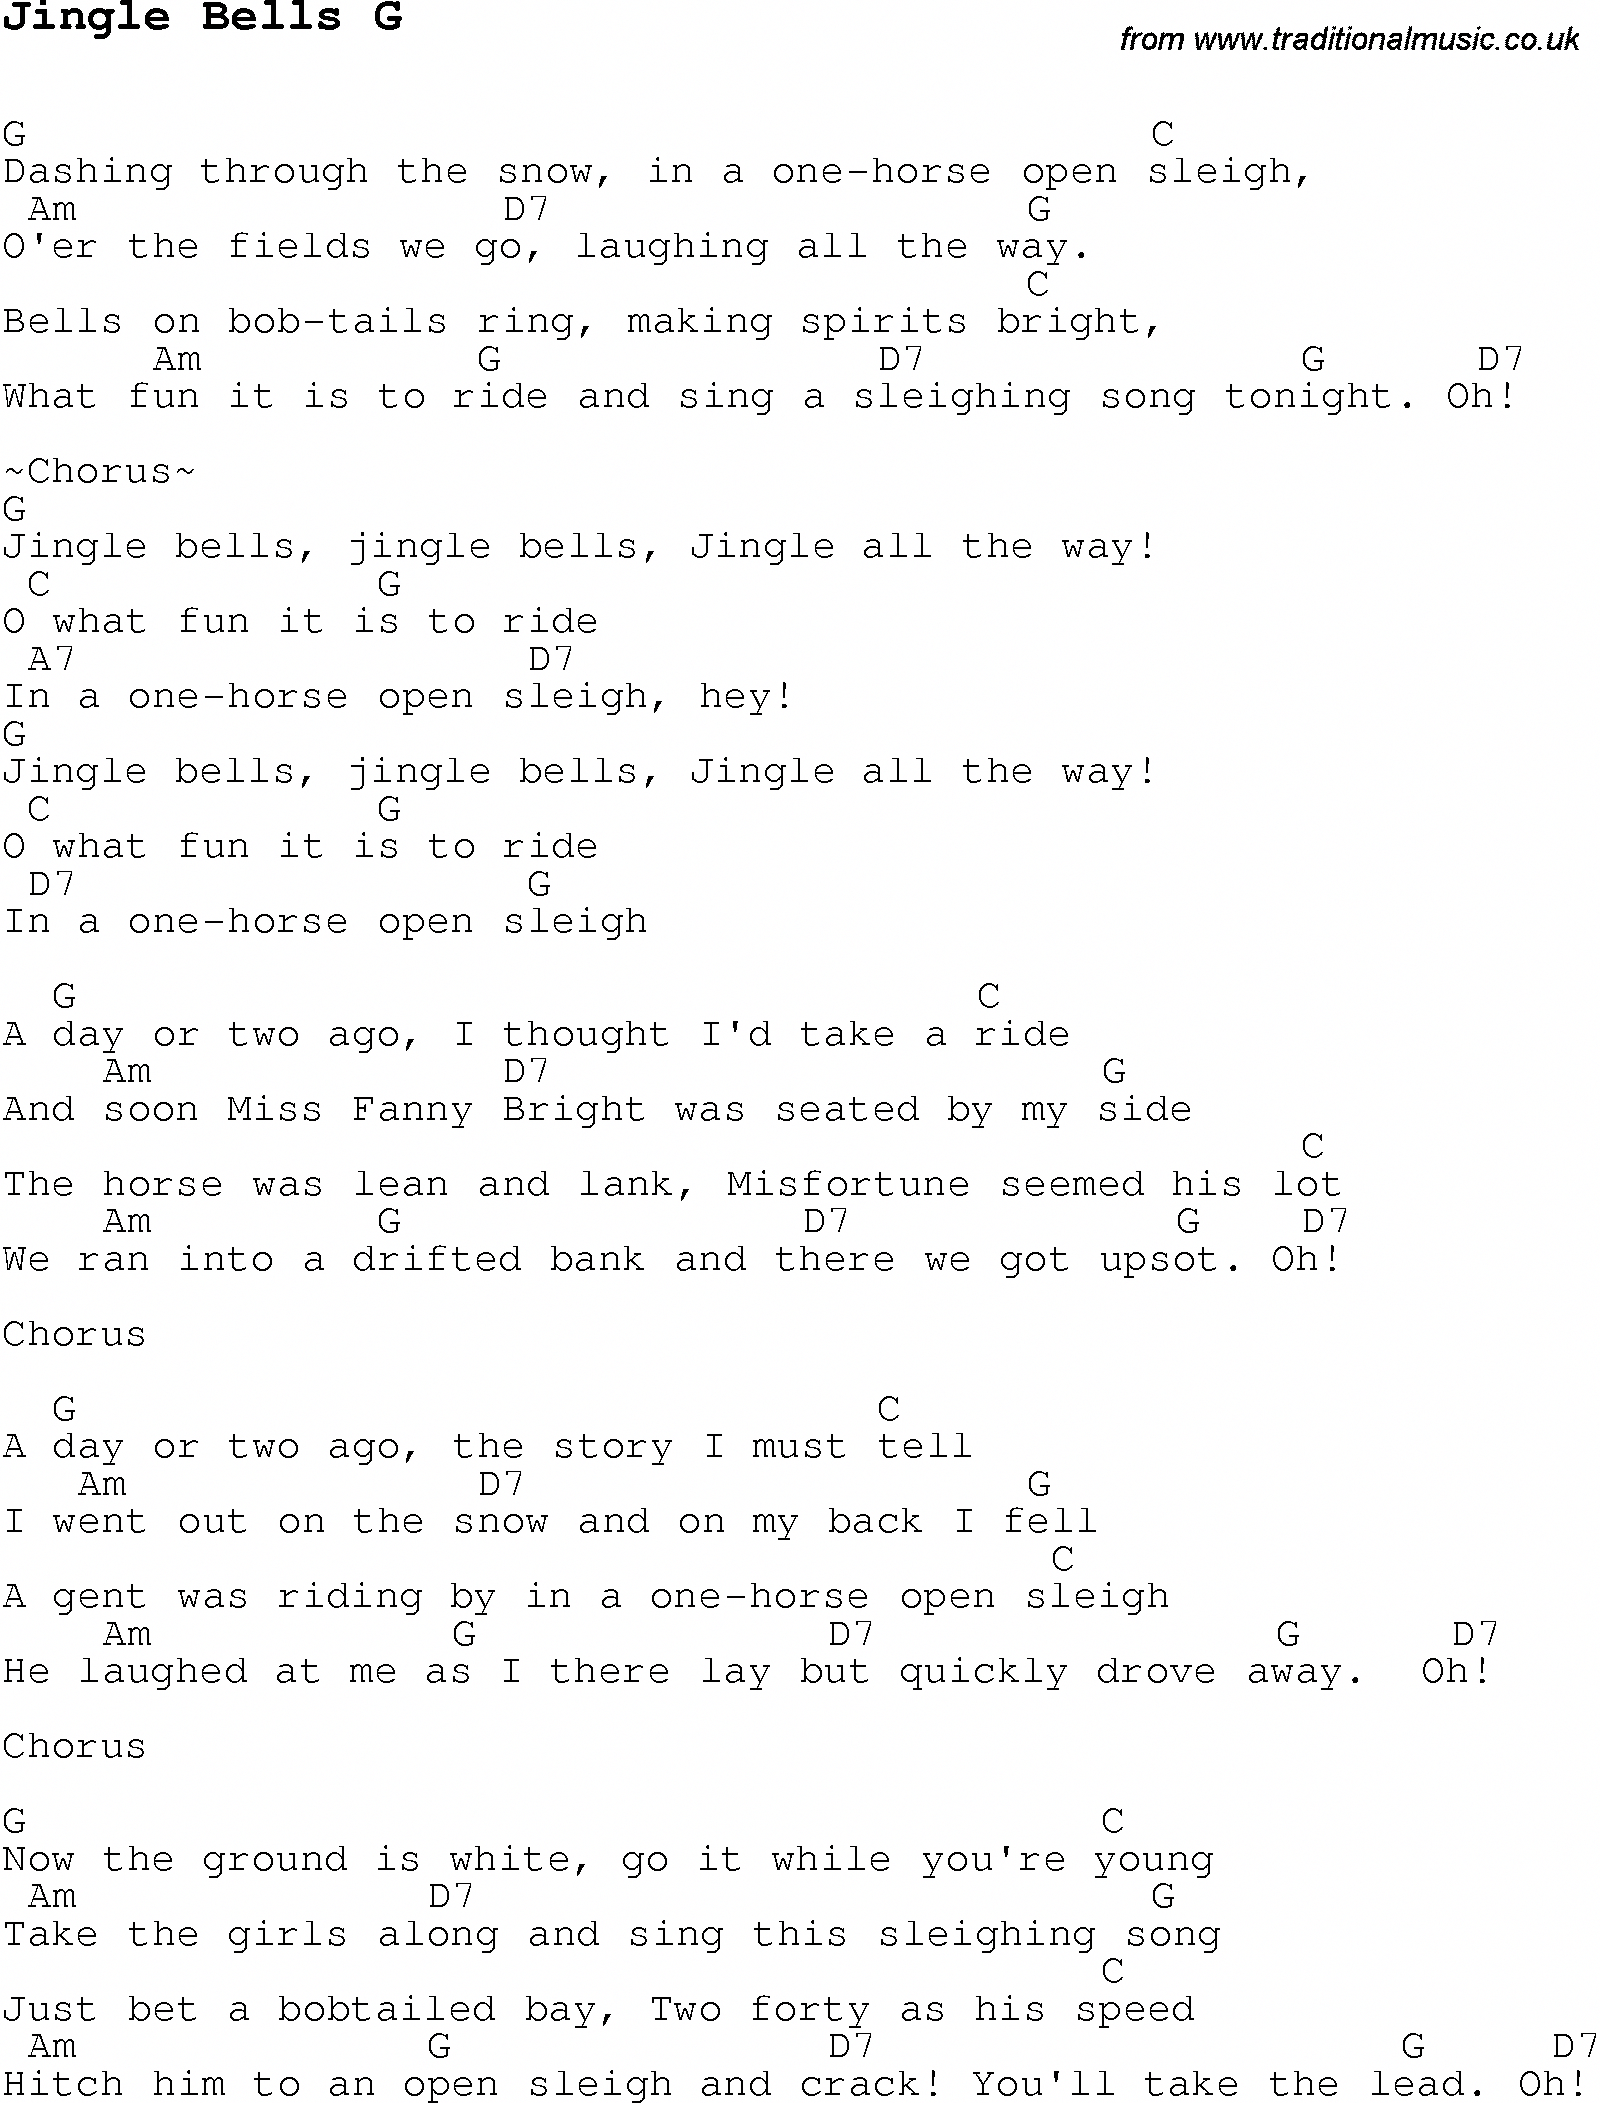 Christmas Songs And Carols Lyrics With Chords For Guitar Banjo For Jingle Bells G Ukuleleforbeginners Ukelele Songs Christmas Ukulele Ukulele Music